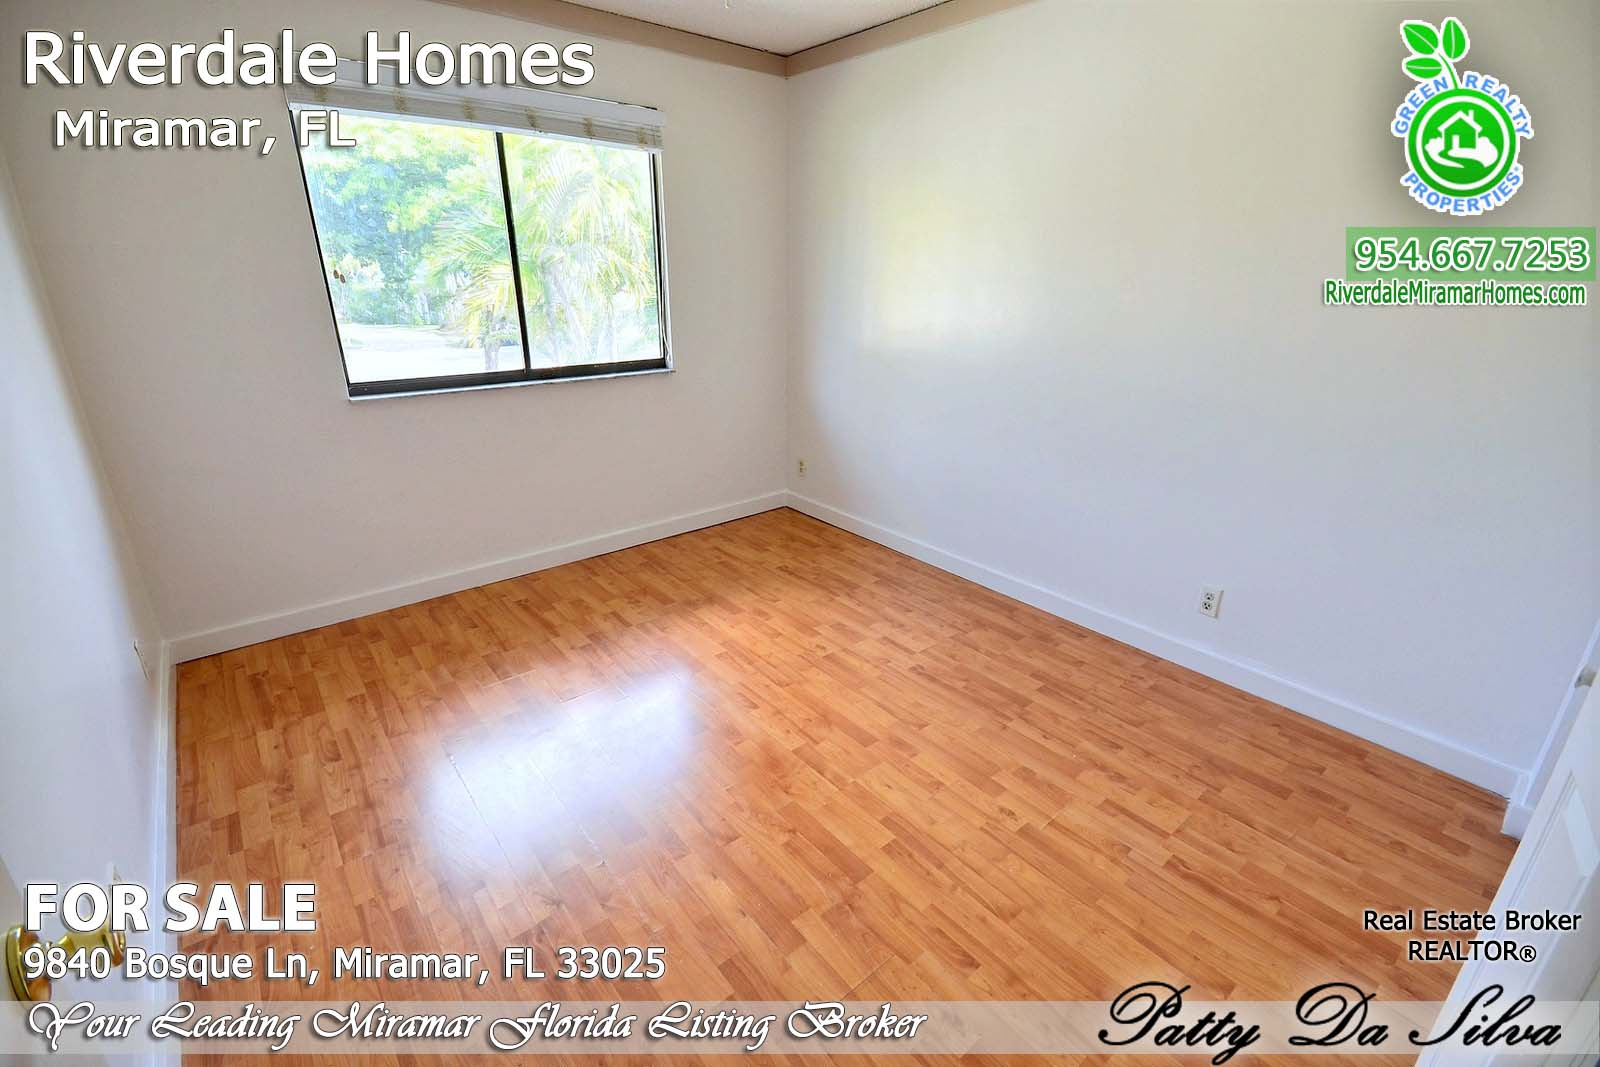 Riverdale Homes For Sale in Miramar Florida - 9840 Bosque Lane (29)